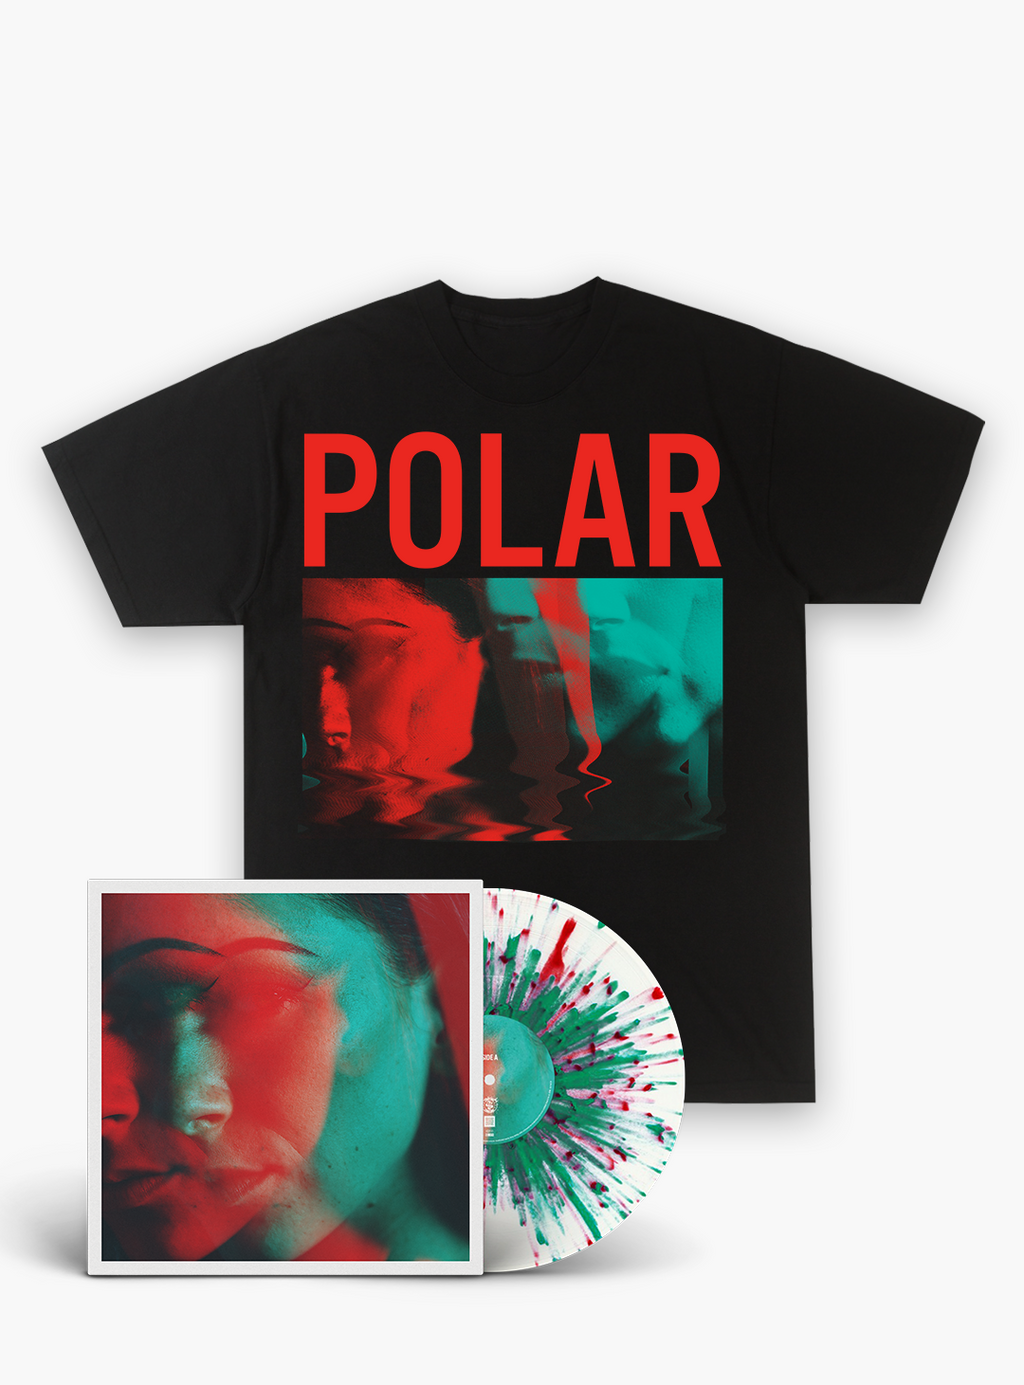 "Nova 12"" Vinyl (Limited Edition) + T-Shirt"